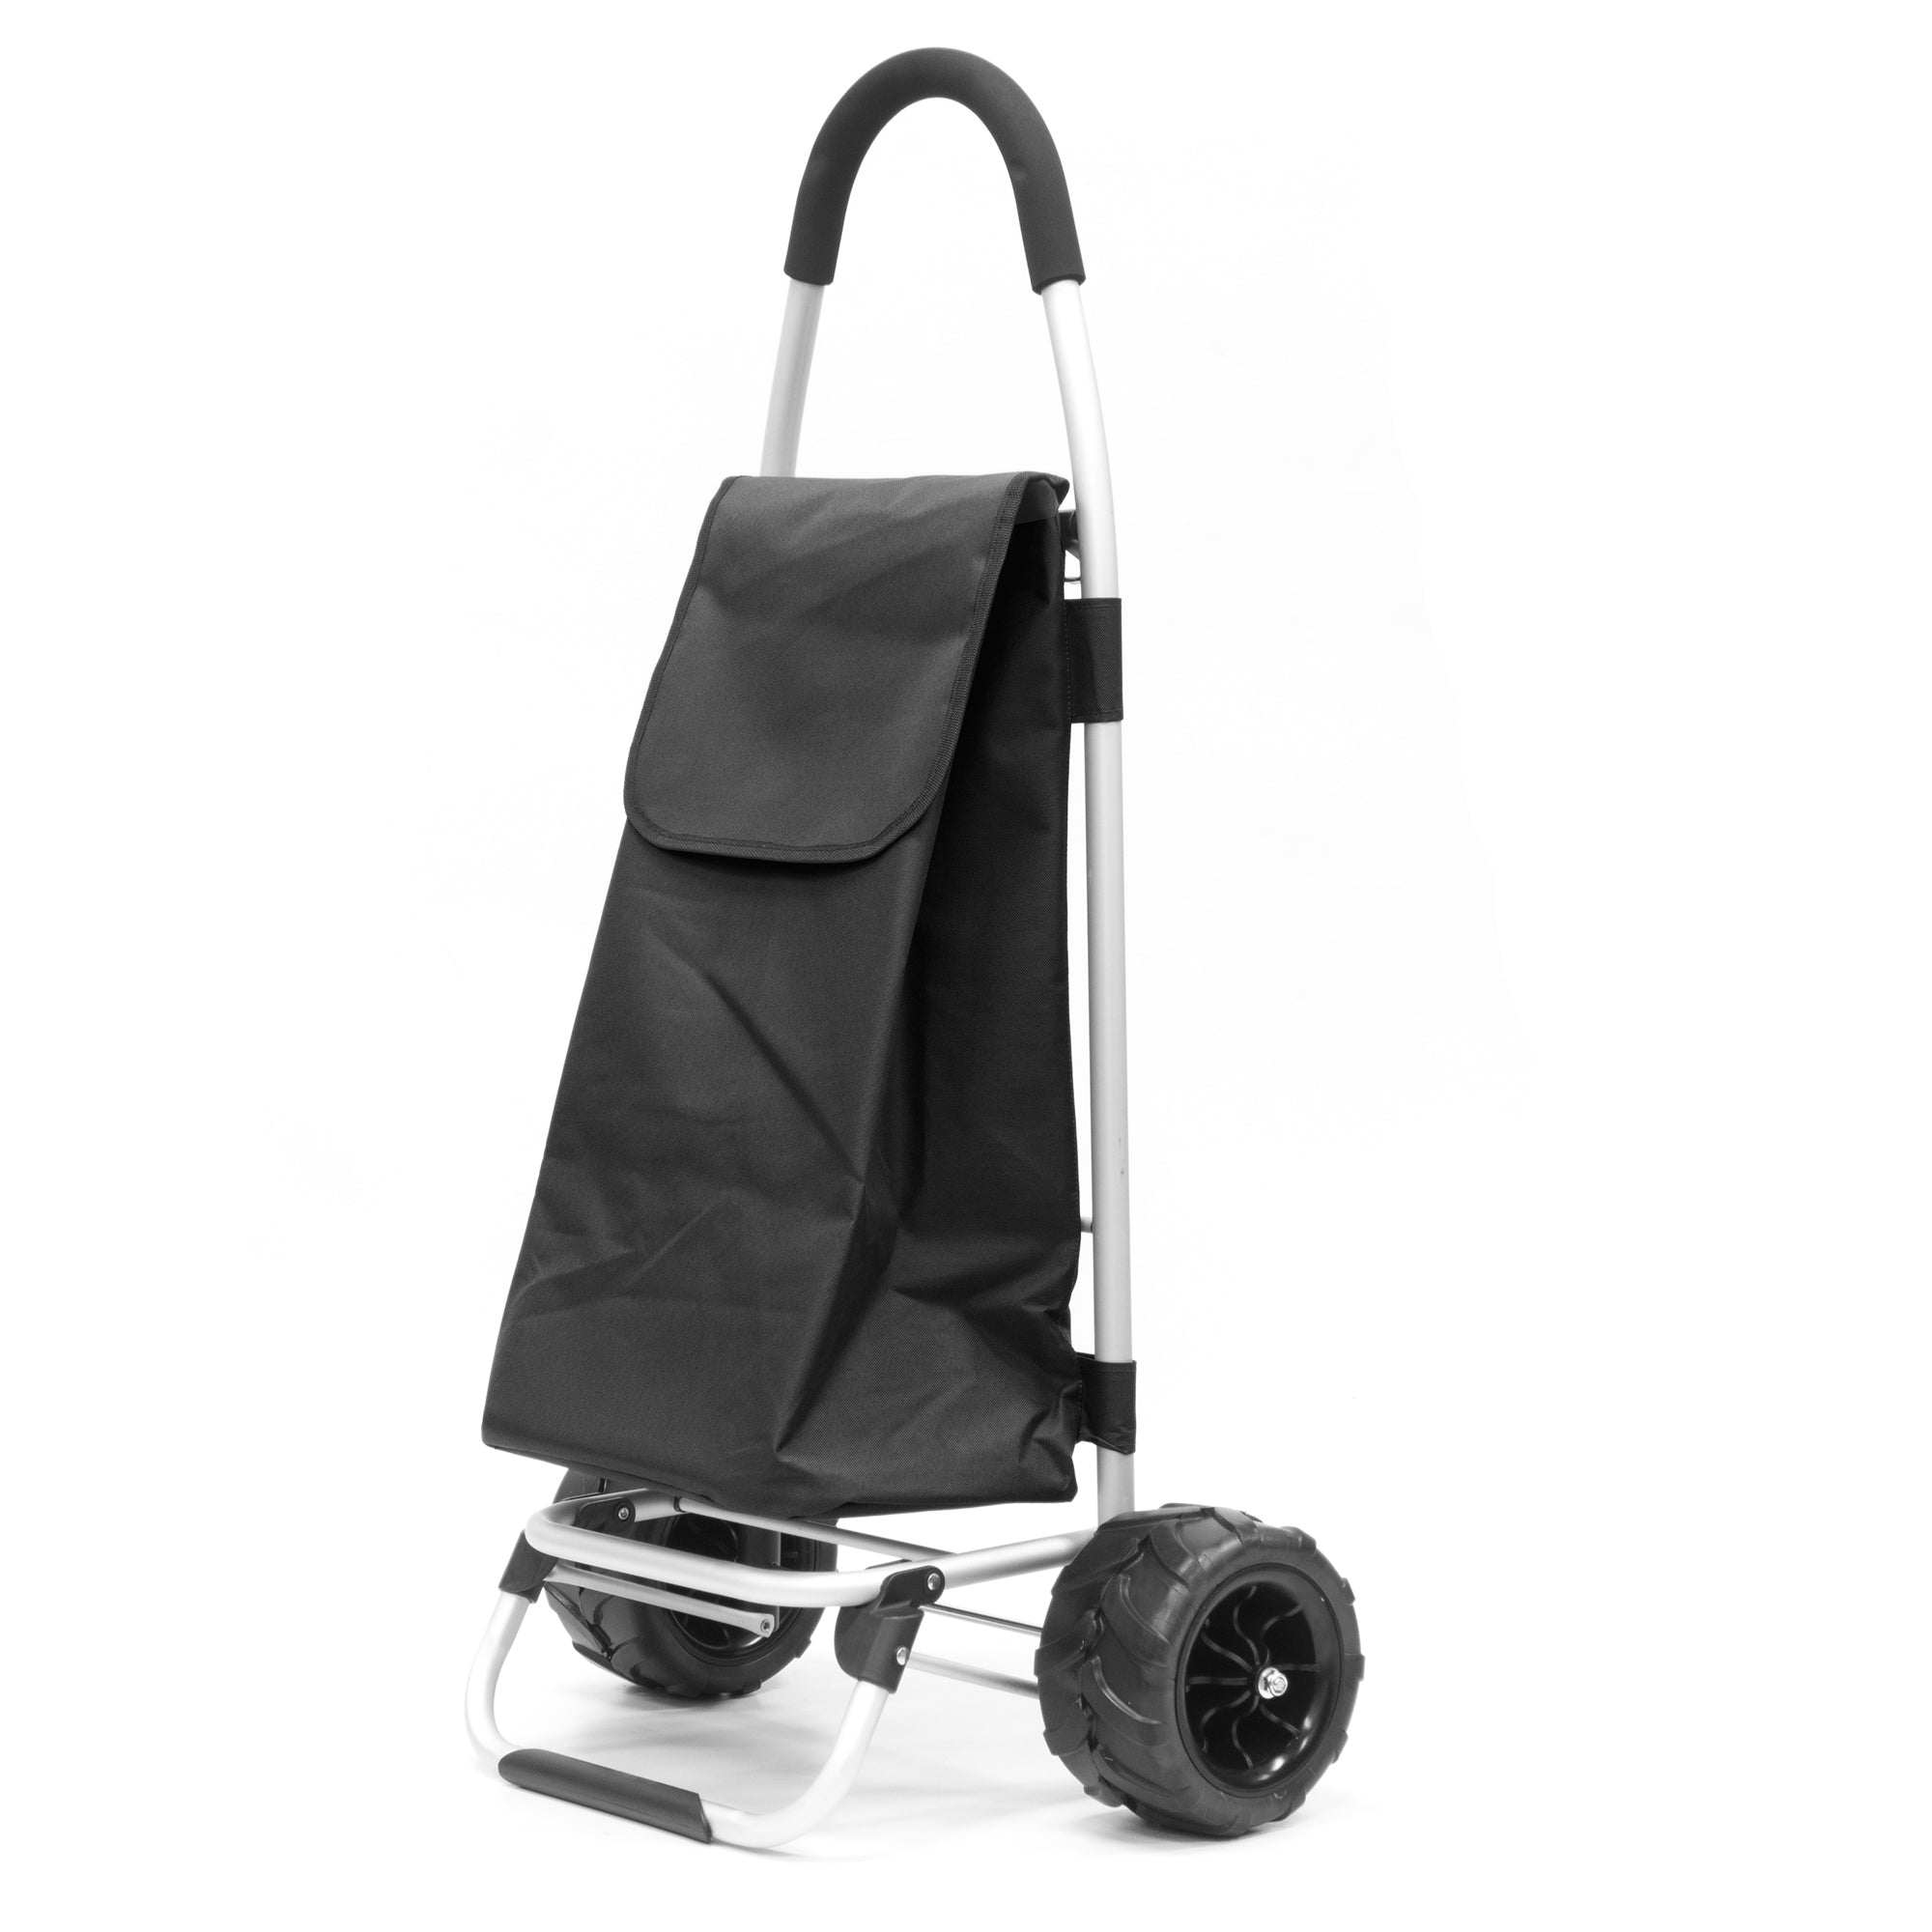 All-Terrain Folding Aluminum Trolley with Removable Cinch-Top Bag 890100